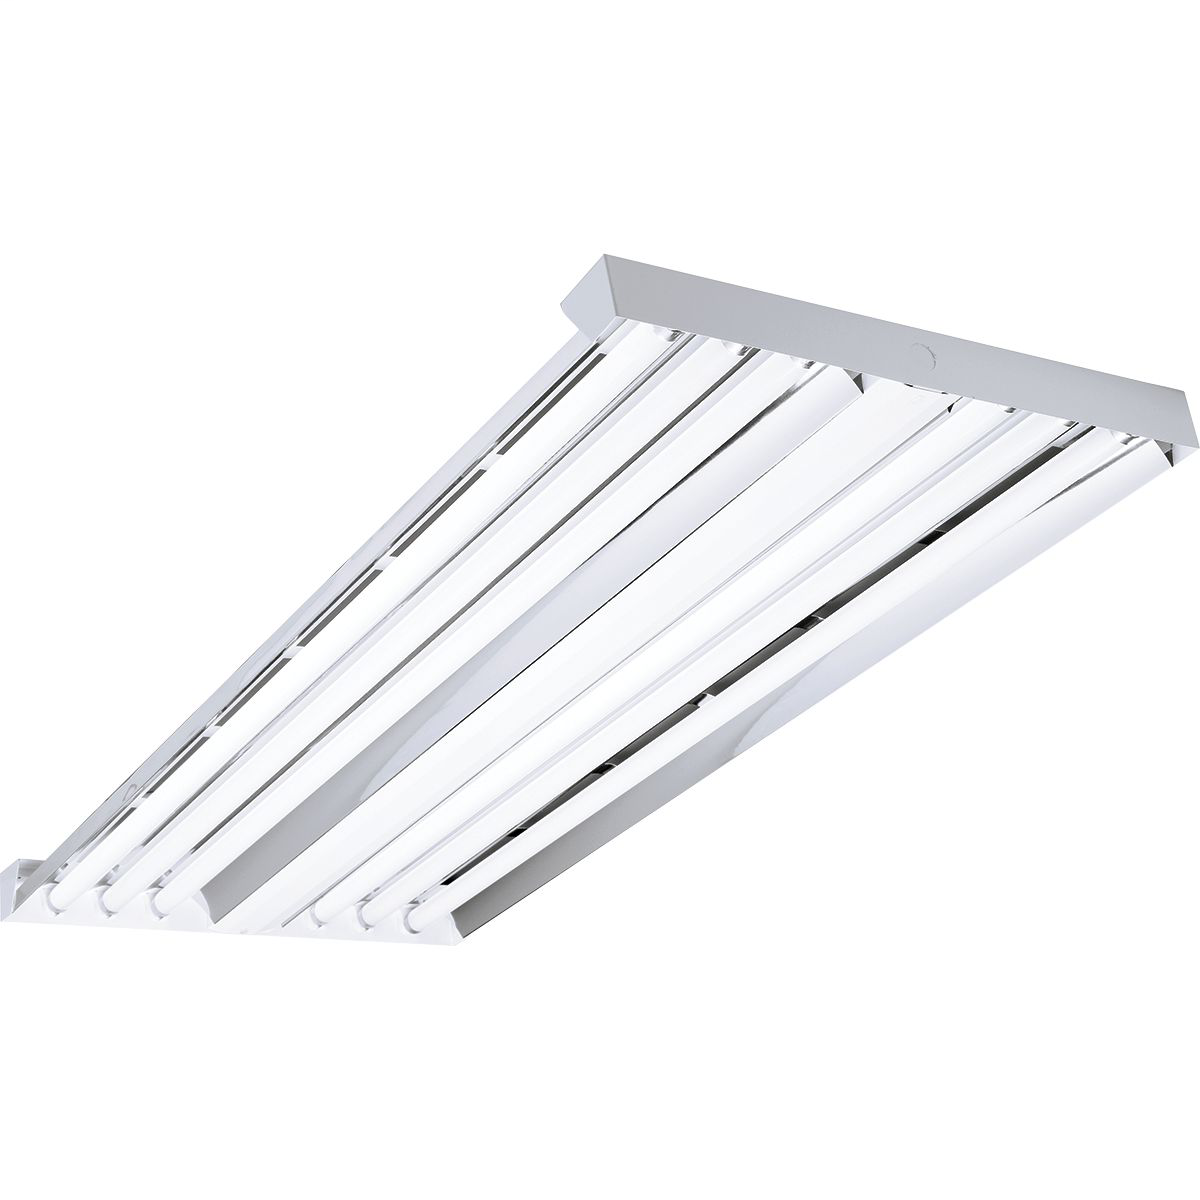 Columbia LHA4-654-NU-24EPU (6) Lamp FP54T5HO High Output High Bay Fixture w/ Narrow Uplight & 120-277 Volt Universal Voltage Electronic T5 Ballast Fluorescent (w/o Lamps)